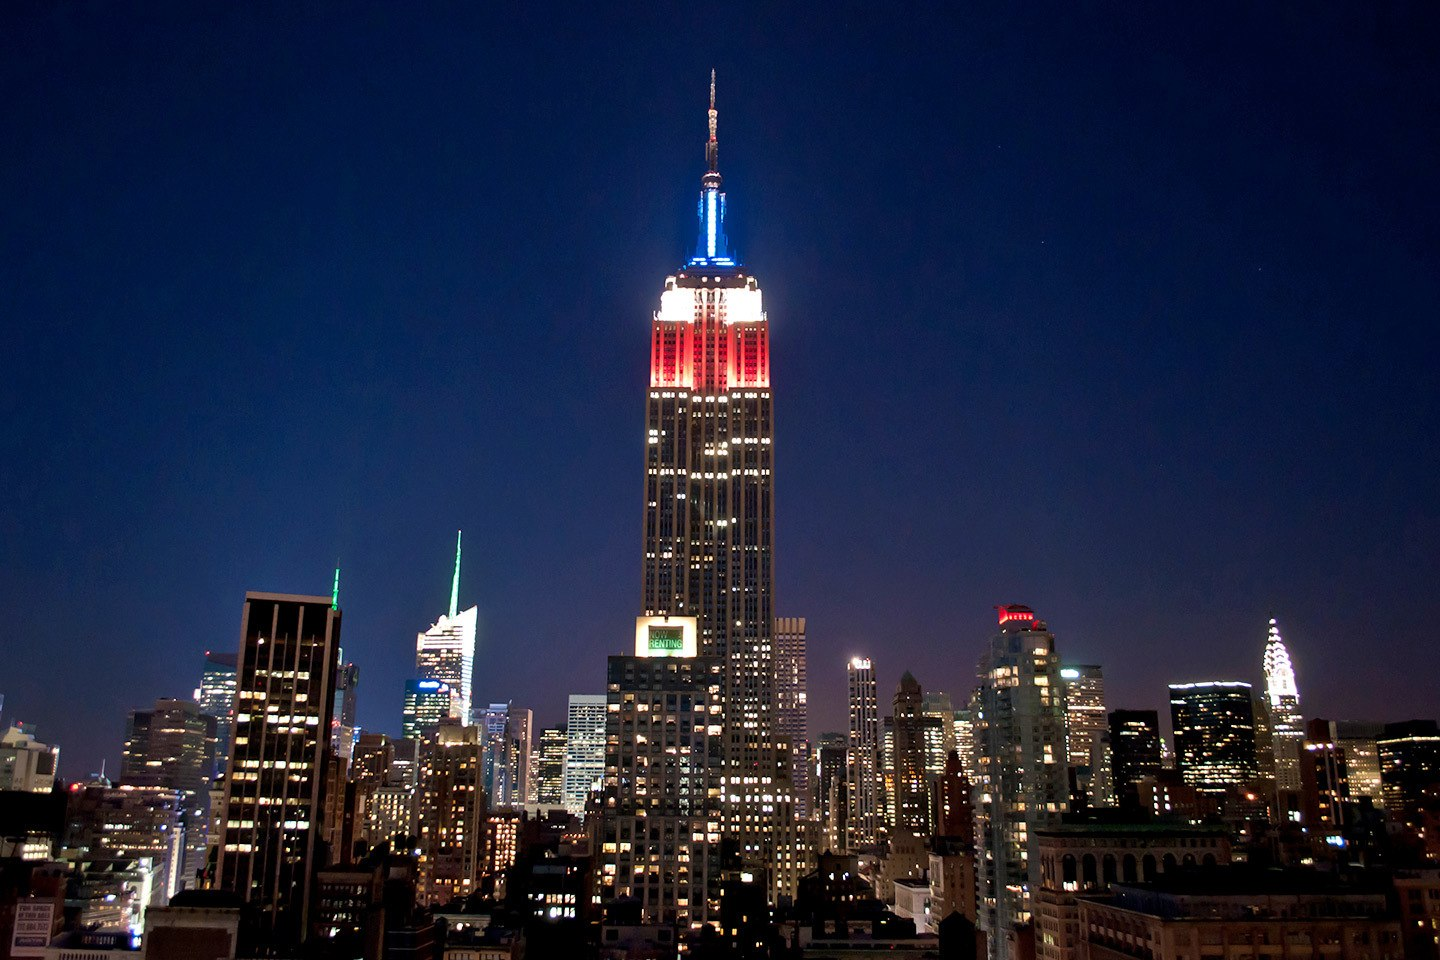 The Empire State Building at night in New York